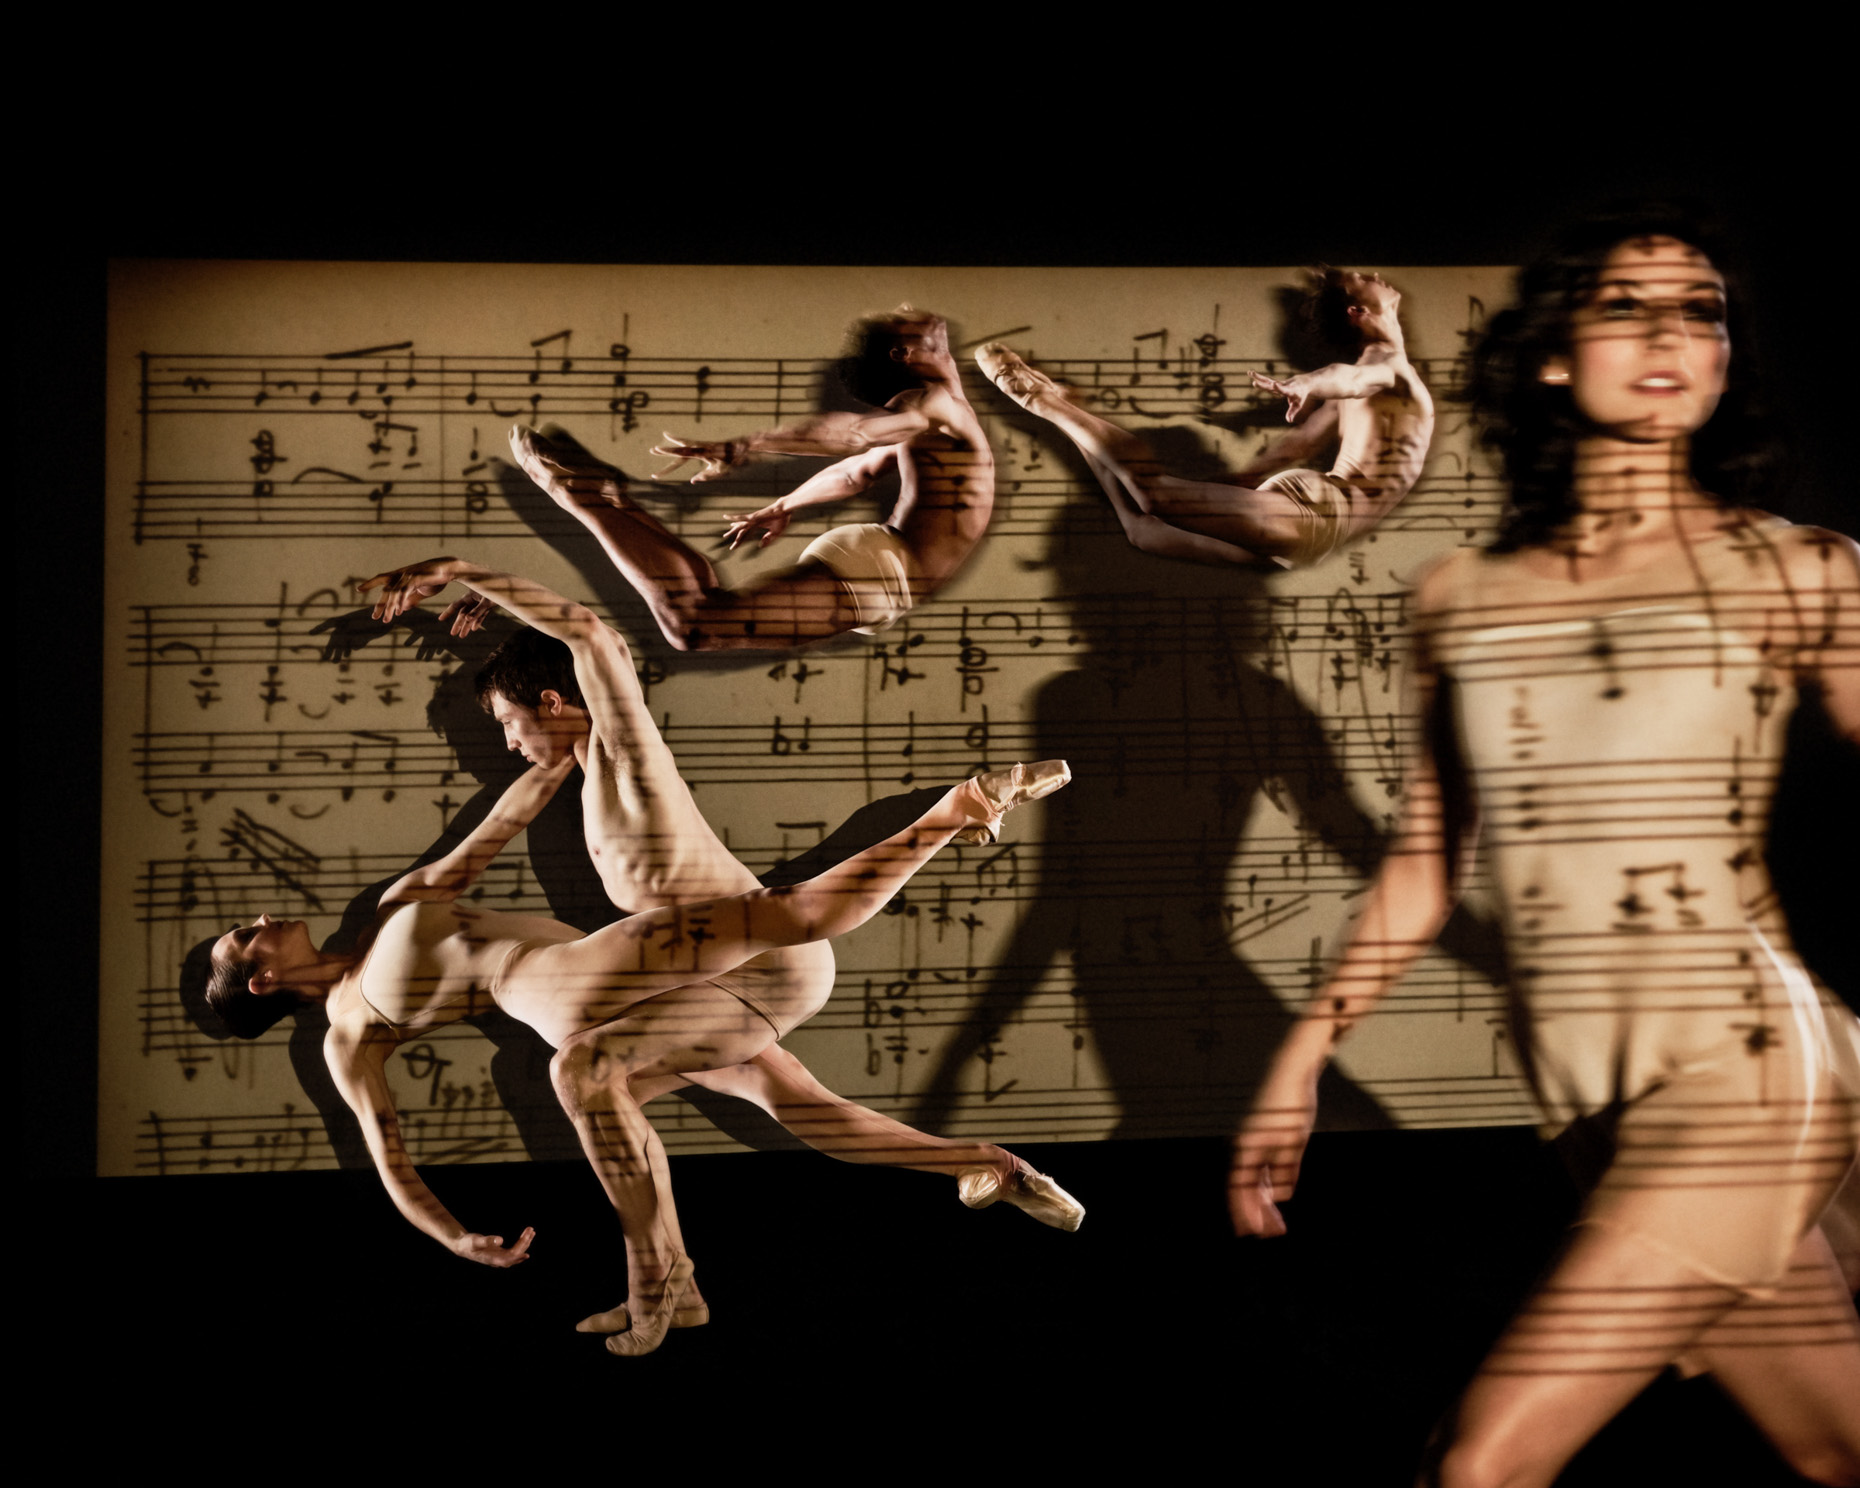 Chromatic Quartet as performed by Oregon Ballet Theatre